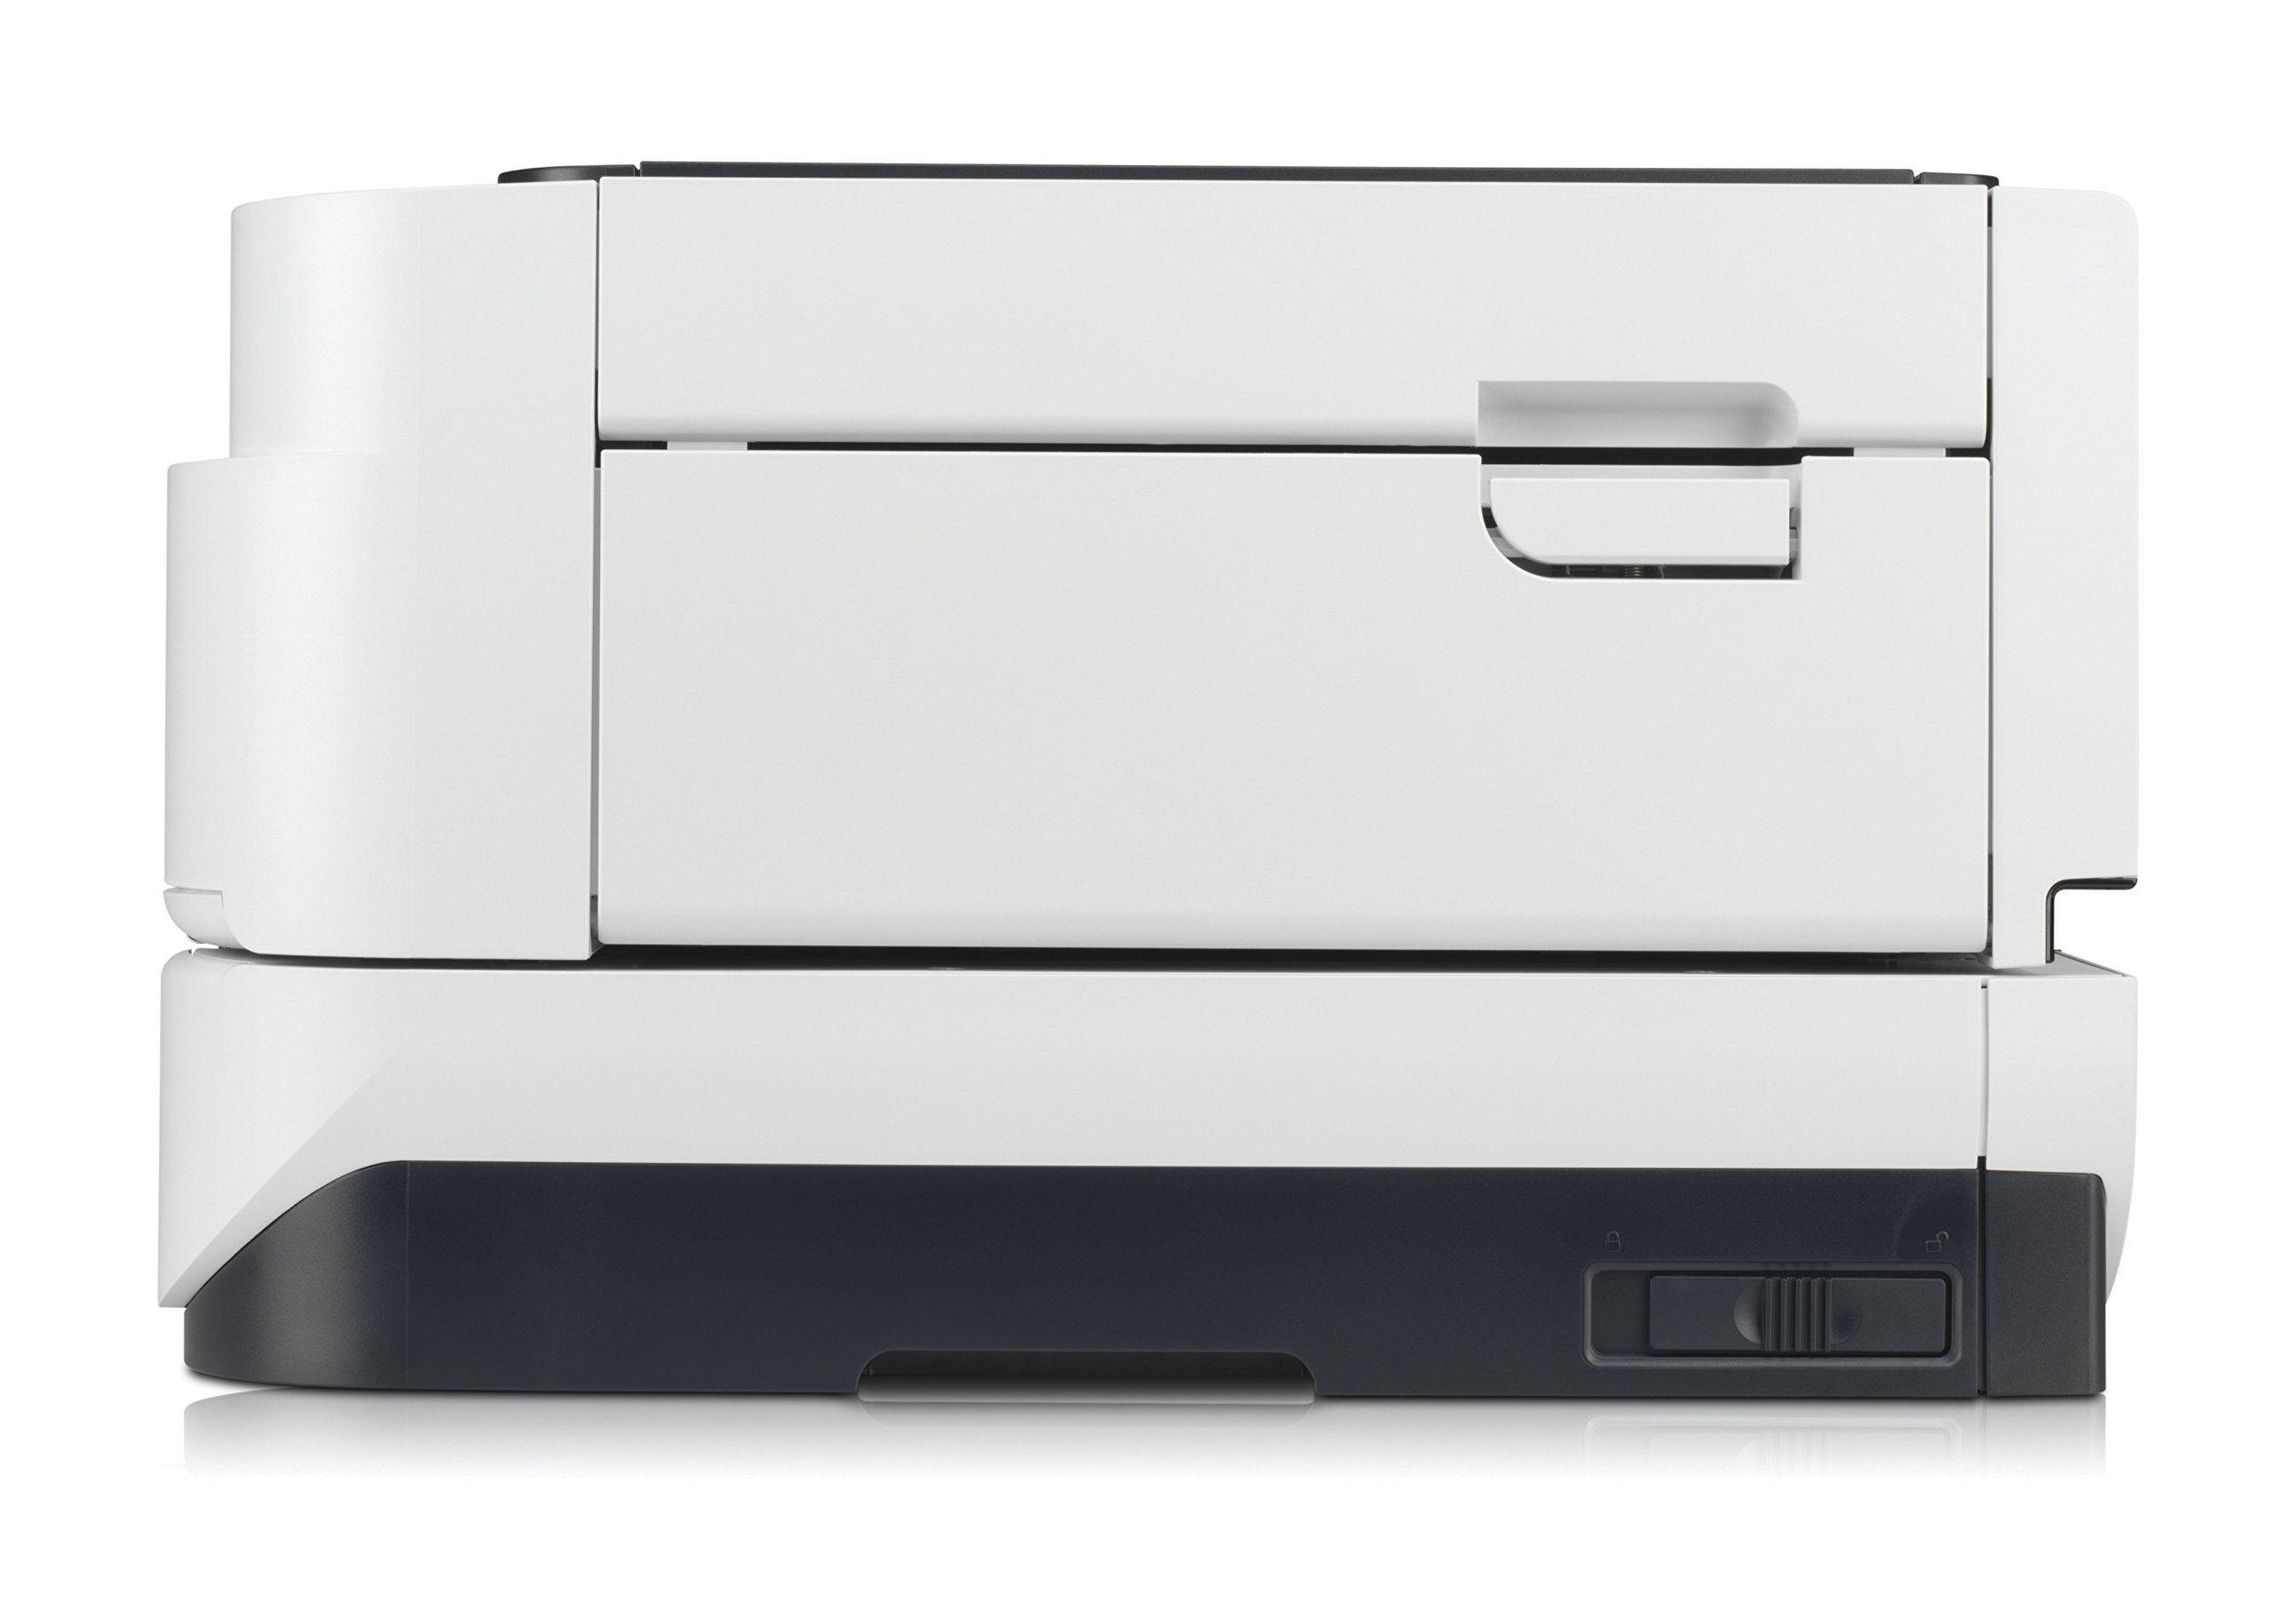 HP ScanJet Enterprise Flow N9120 Flatbed OCR Scanner by HP (Image #2)